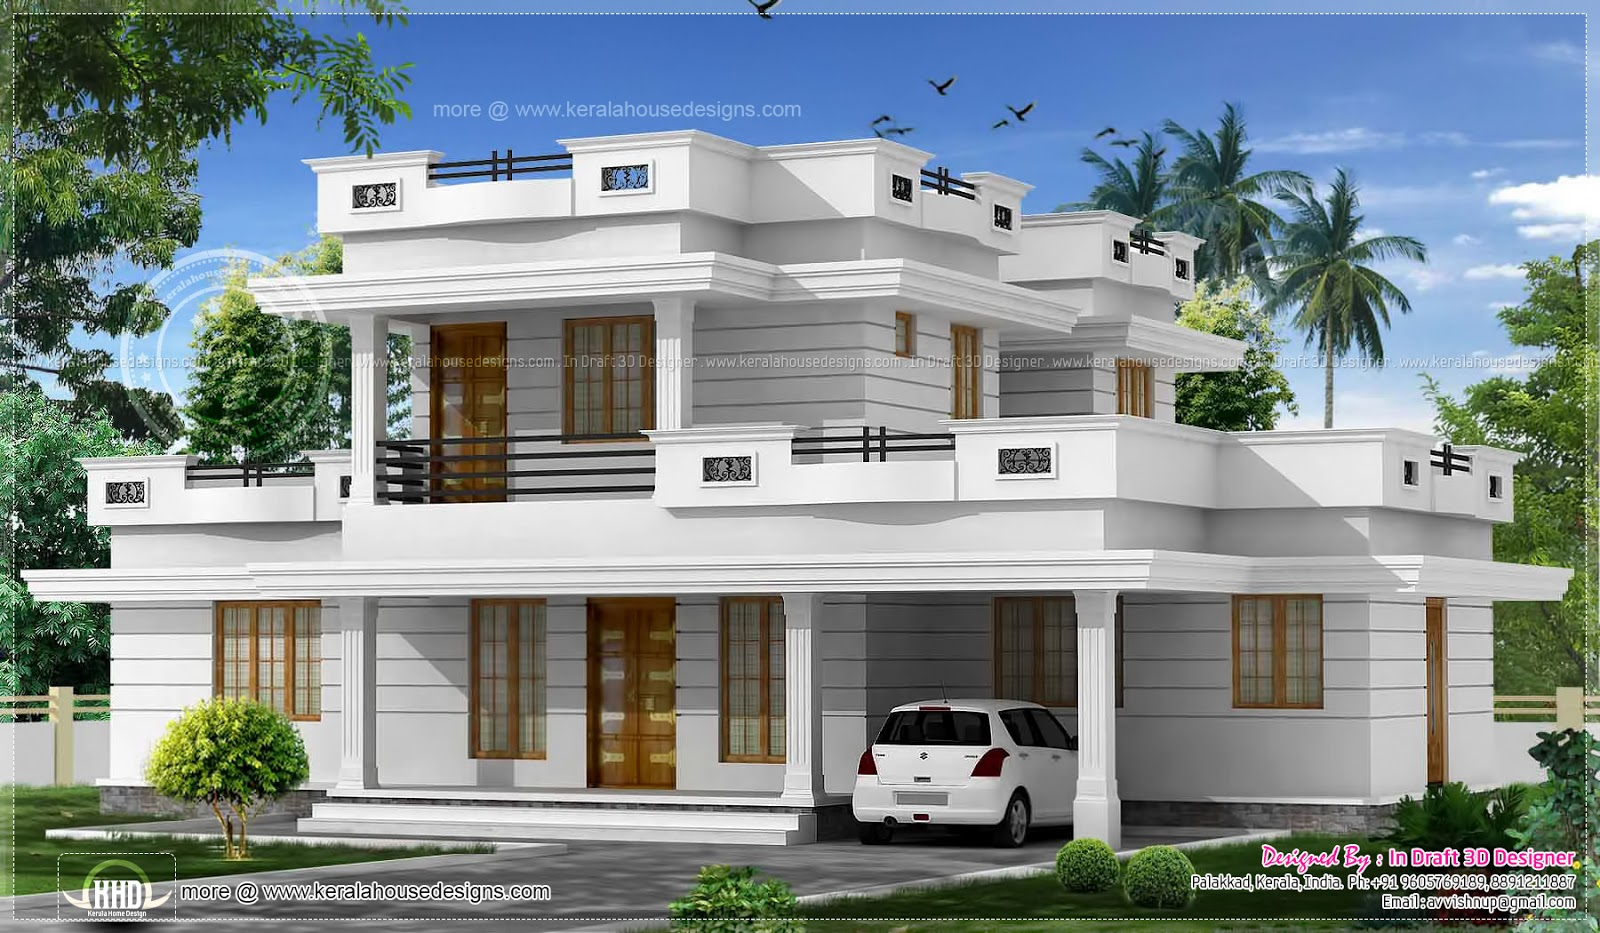 3 bed room flat roof villa with courtyard 2172 sq ft for Houses and their plans